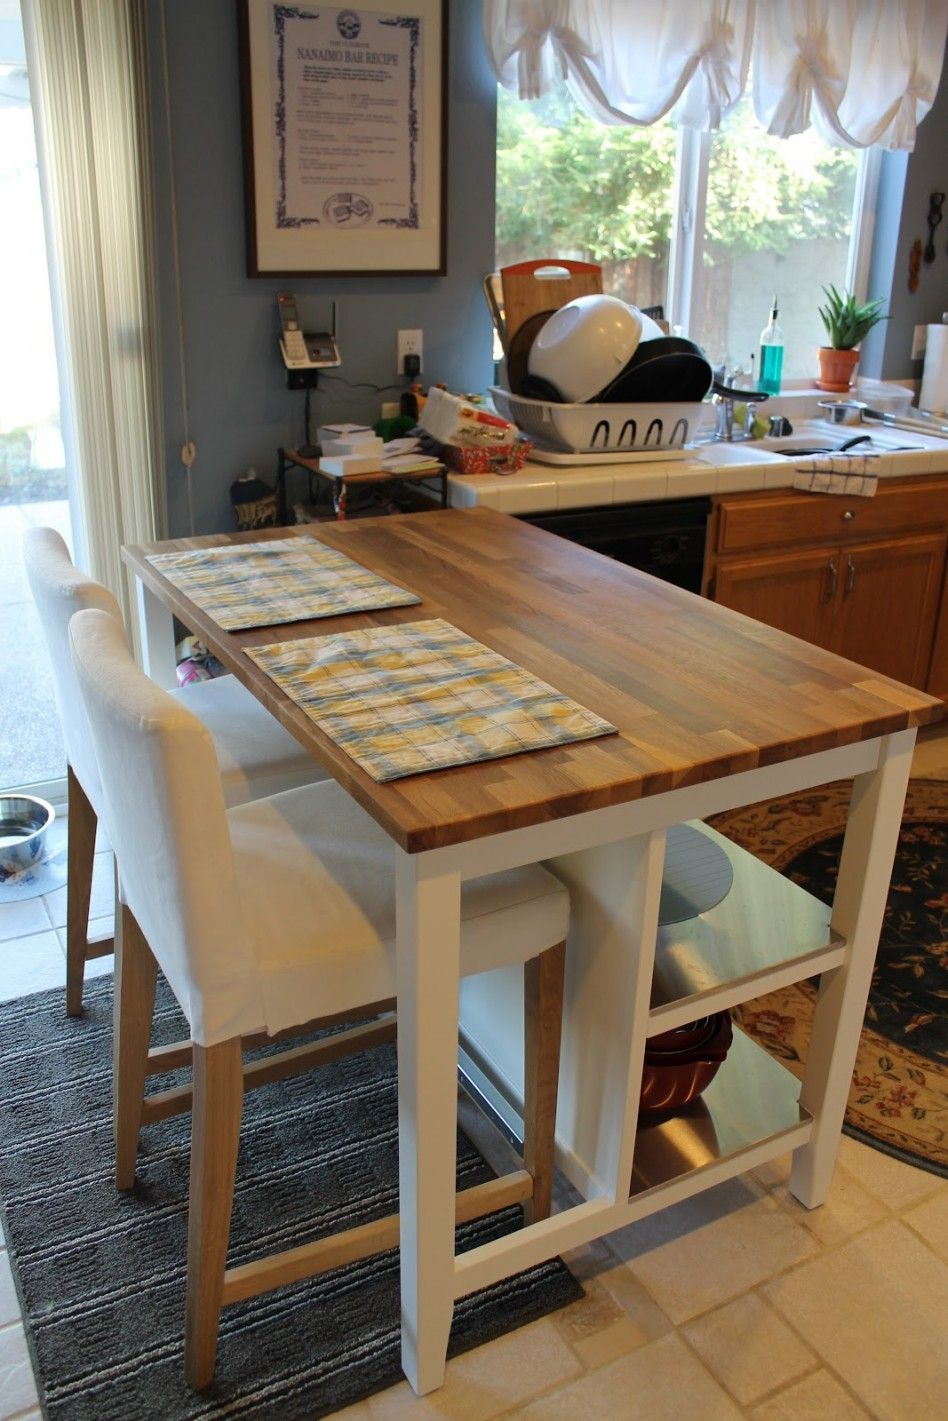 Ikea Stenstorp Kitchen Island Southern Colonial Ikea Stenstorp Makeover With Marble Top And